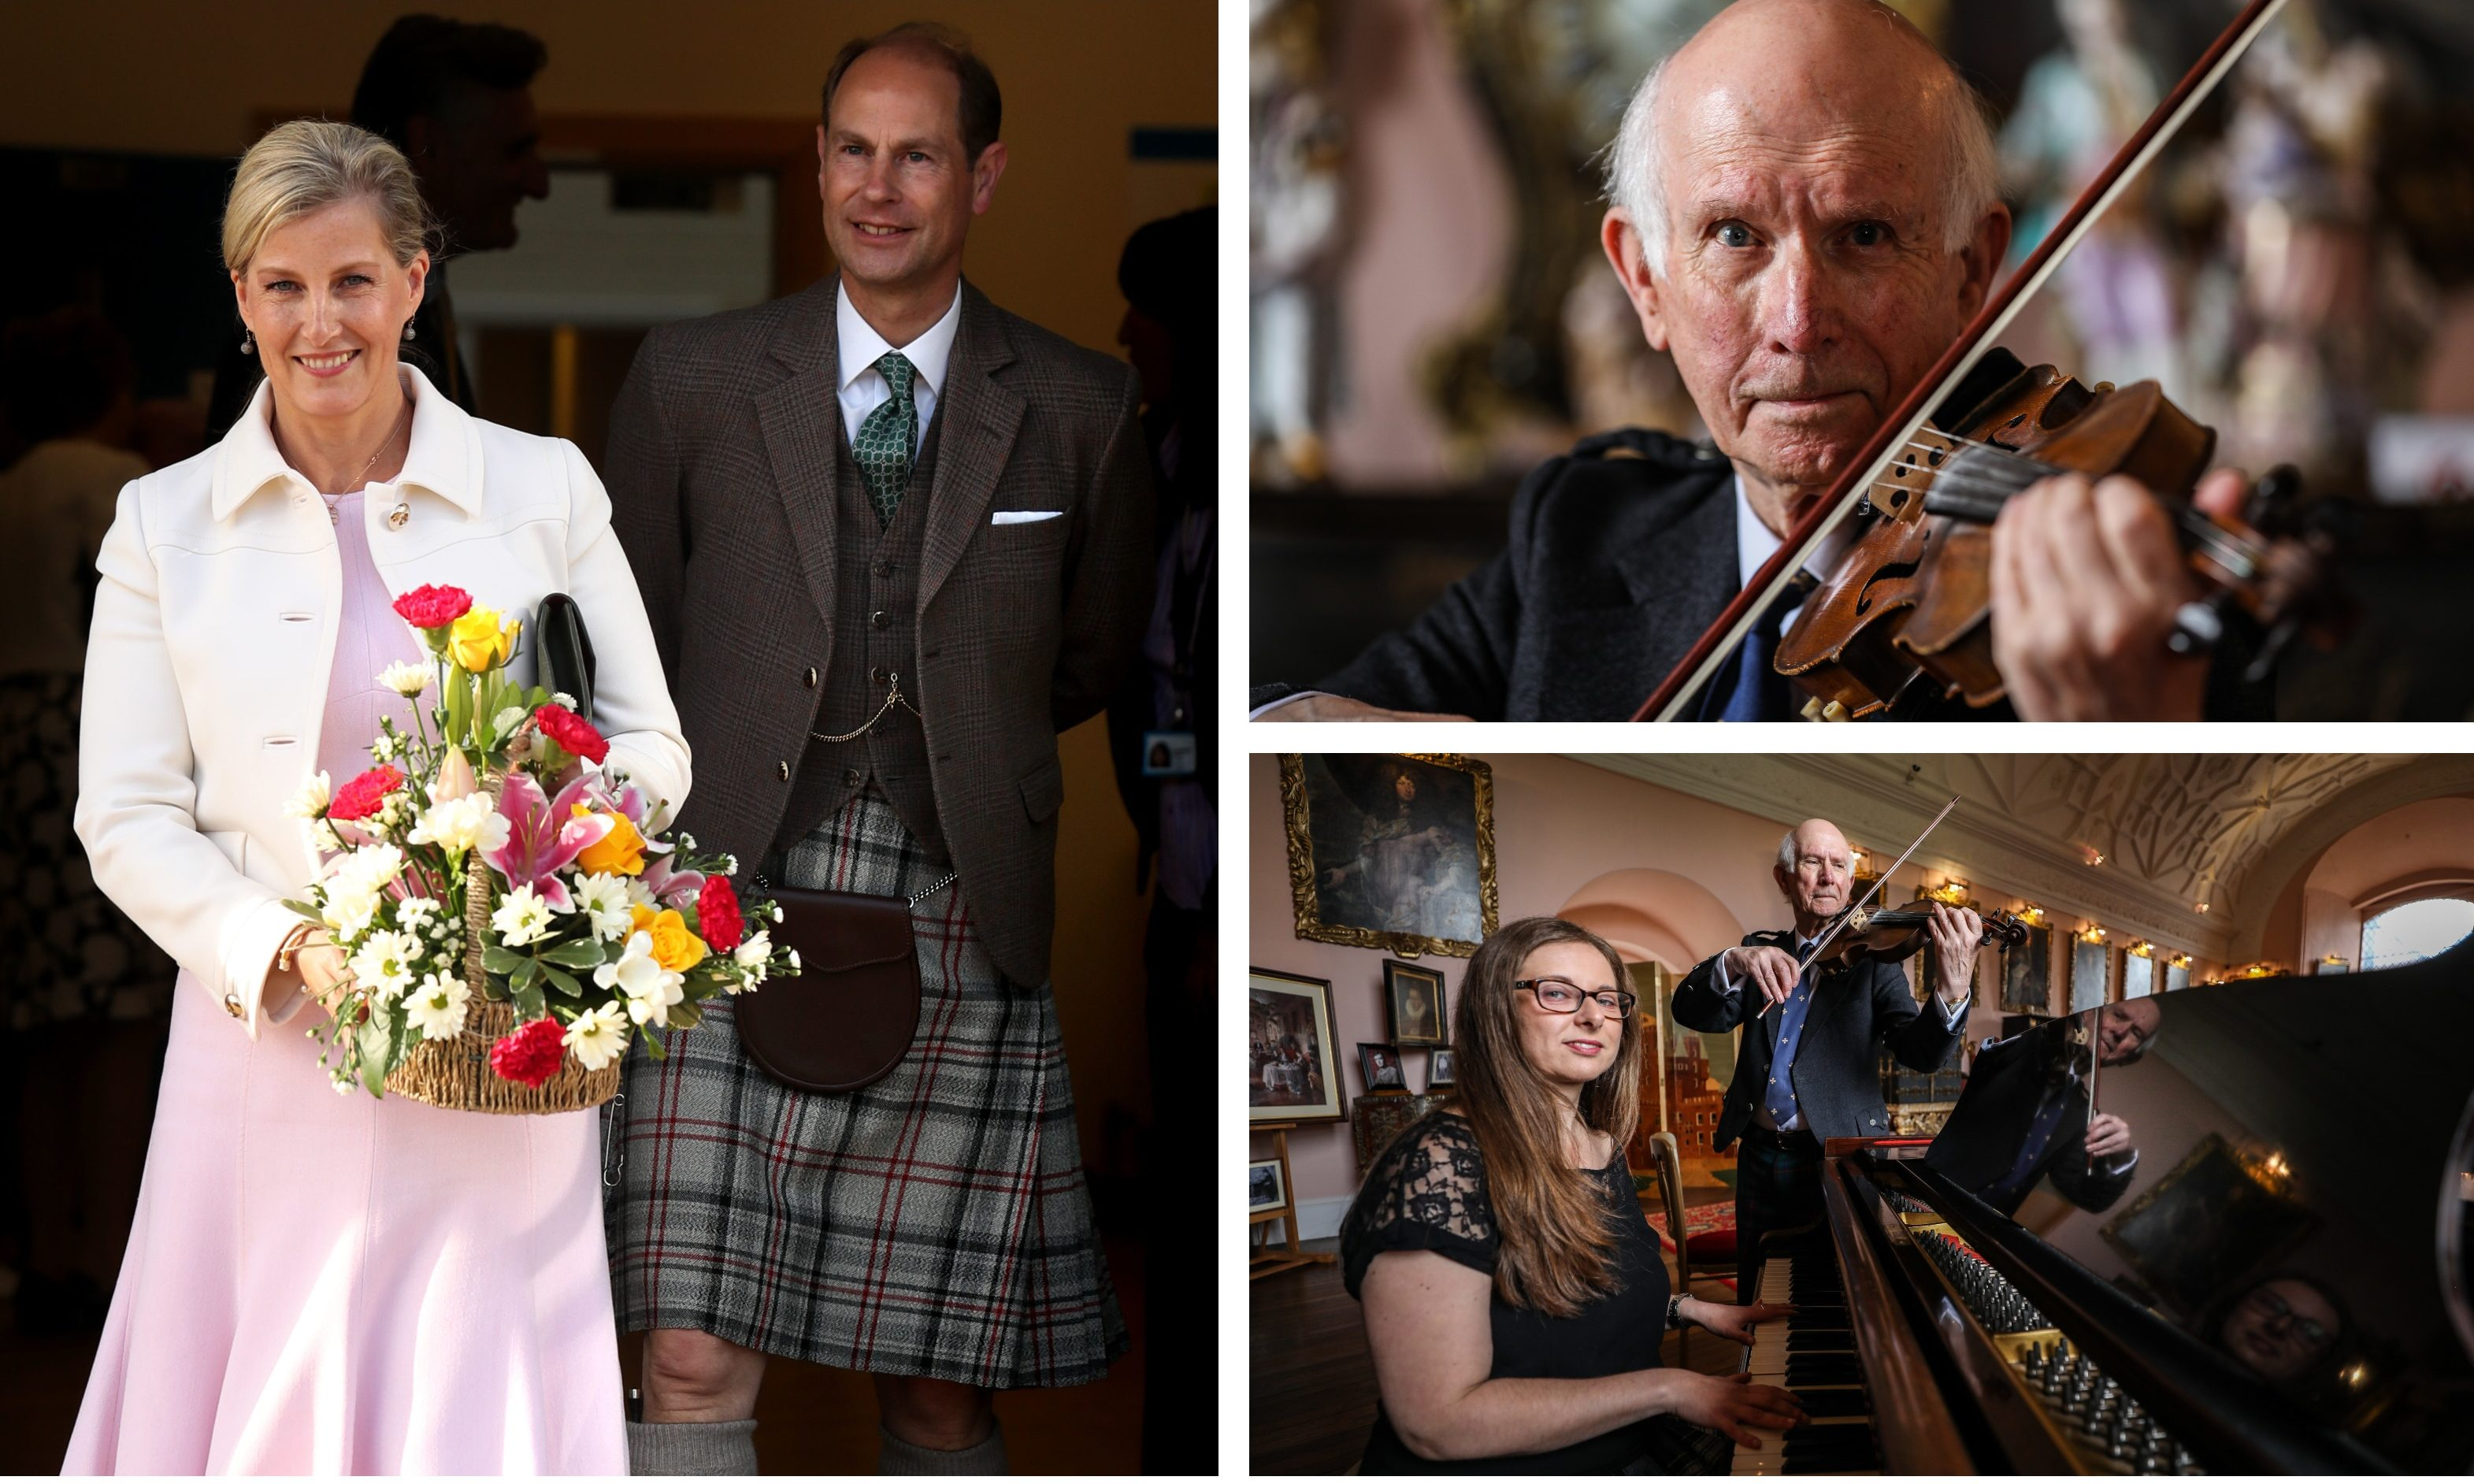 Sandy Ingram was asked to compose a tune for the new Earl and Countess of Forfar.